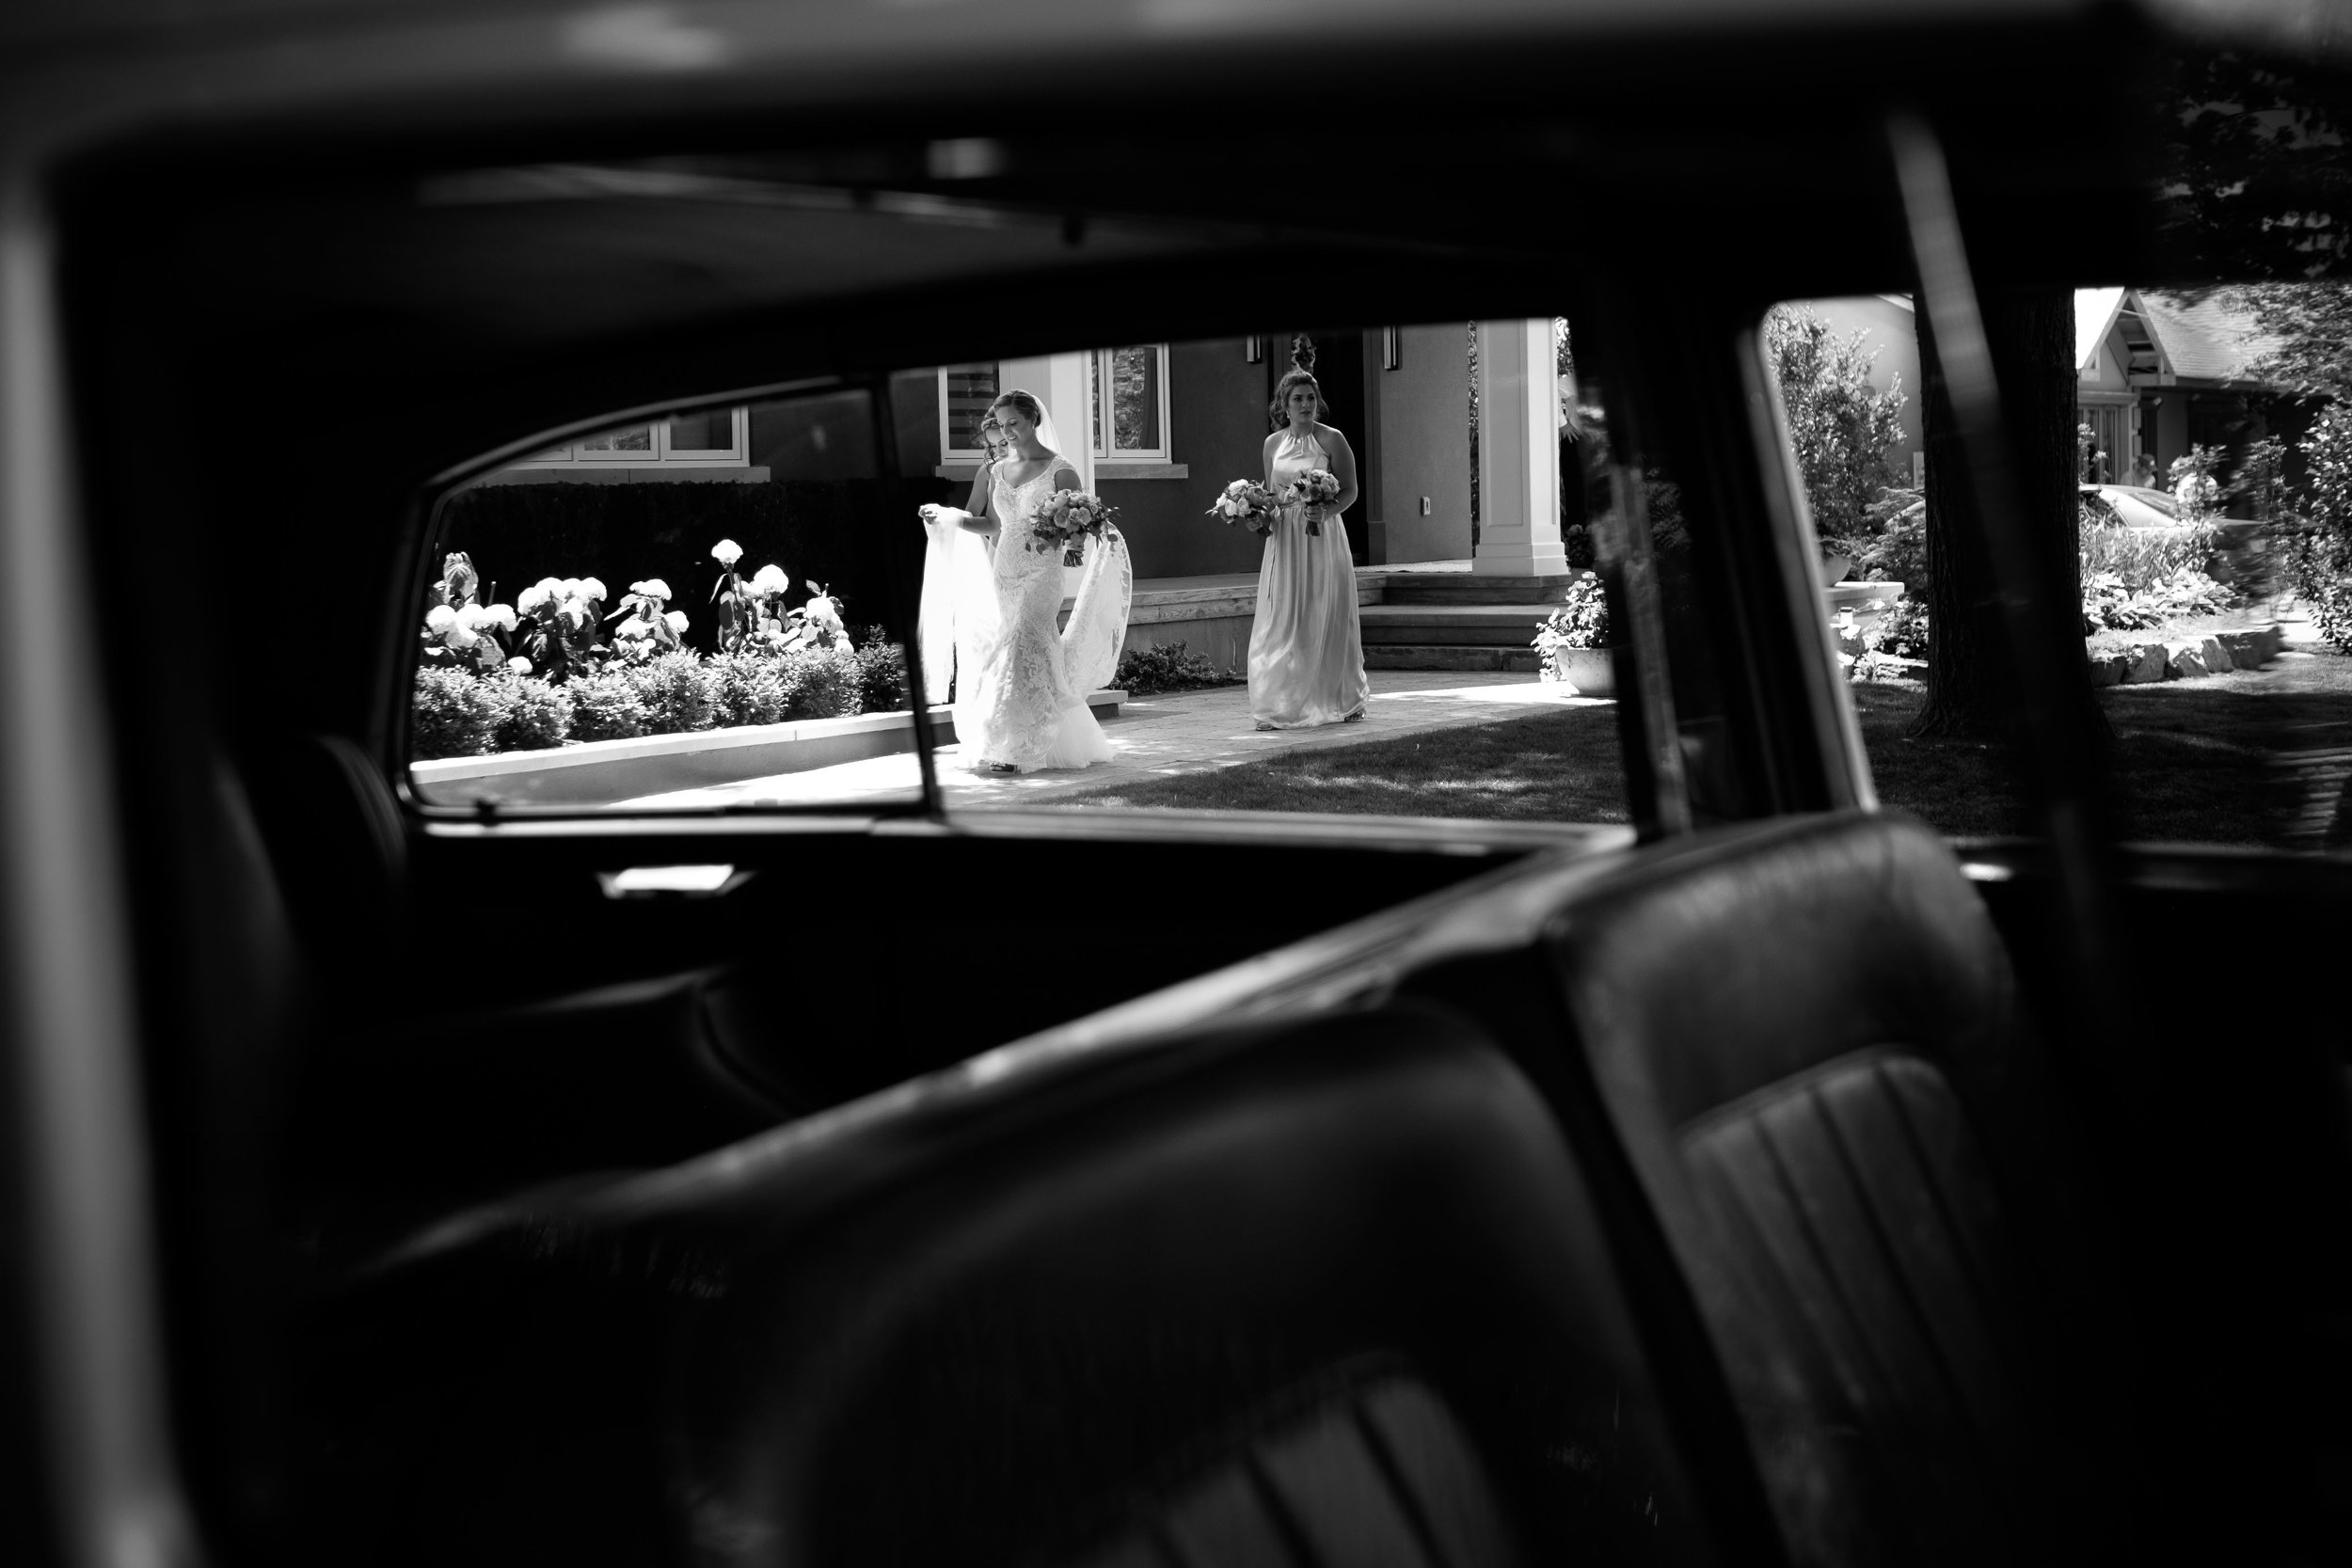 Sabrina leaves her parents house to ride in a classic Rolls Royce before her wedding ceremony.